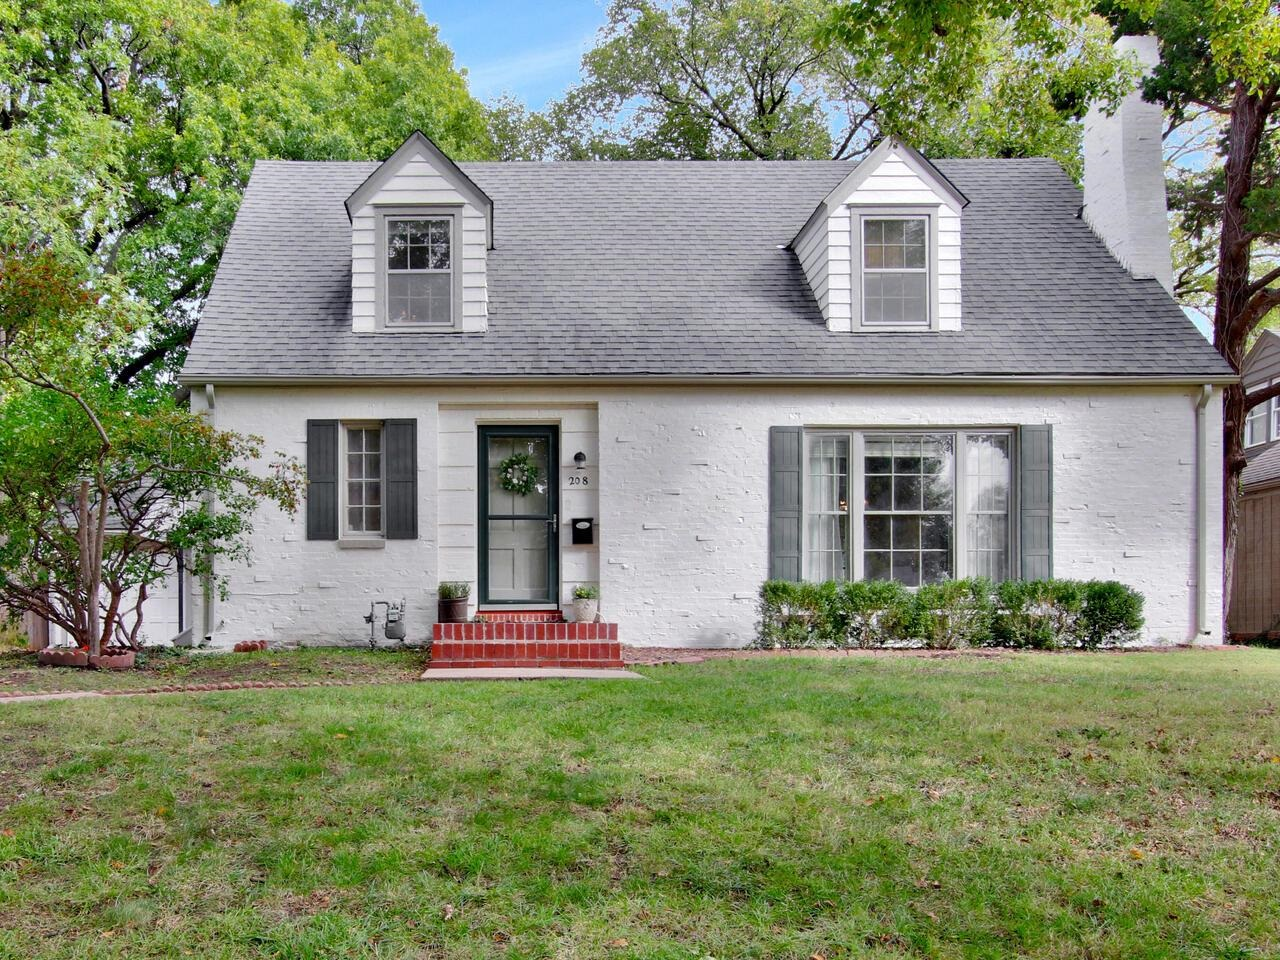 Are you ready to live in one of Wichita's most sought after neighborhoods? This amazing home located